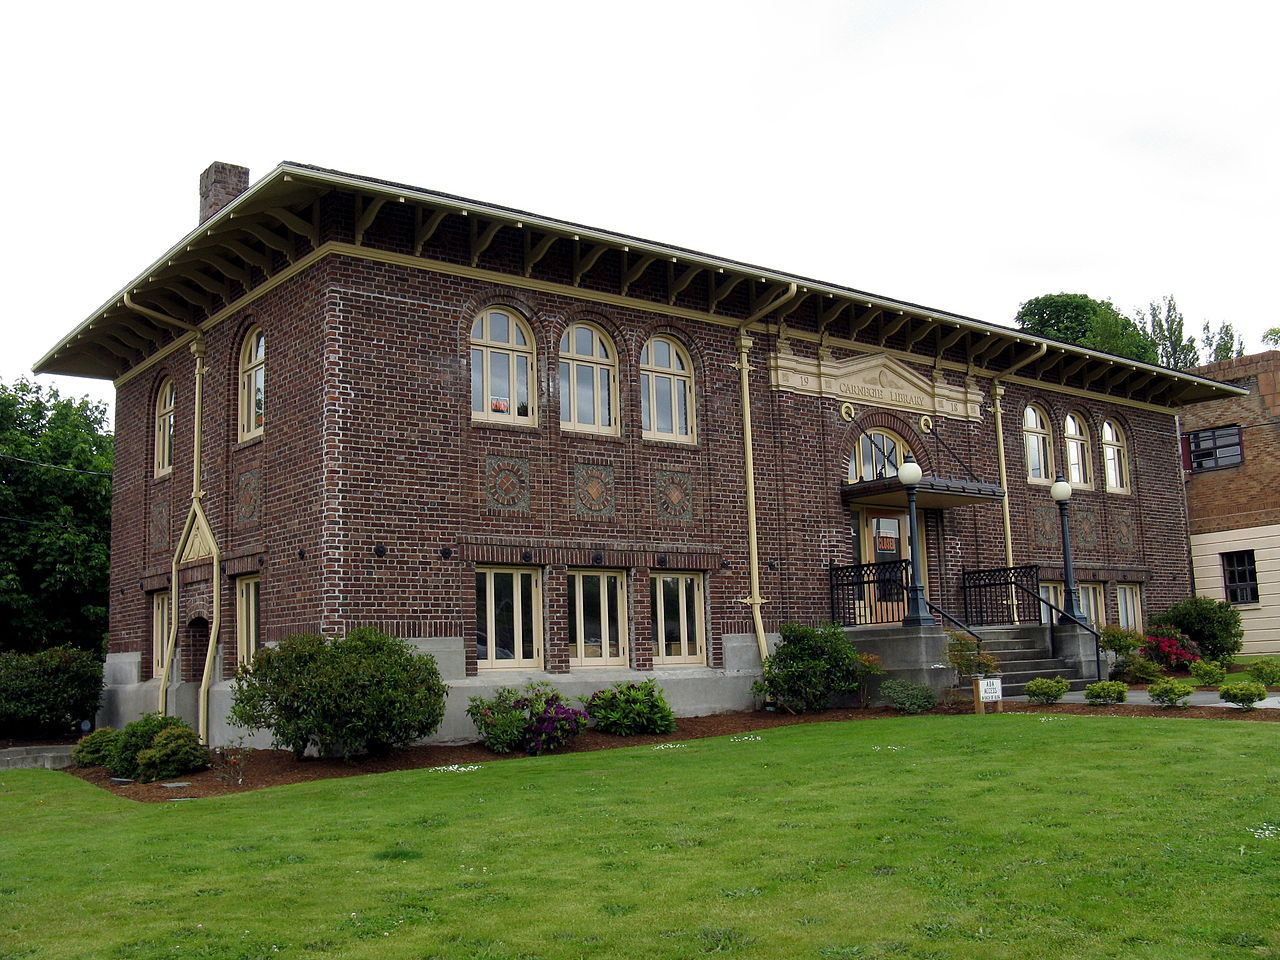 The Carnegie Museum was built in 1919 and operated as library until 1967. It is now managed by the the Lower Elwha Klallam Tribe.